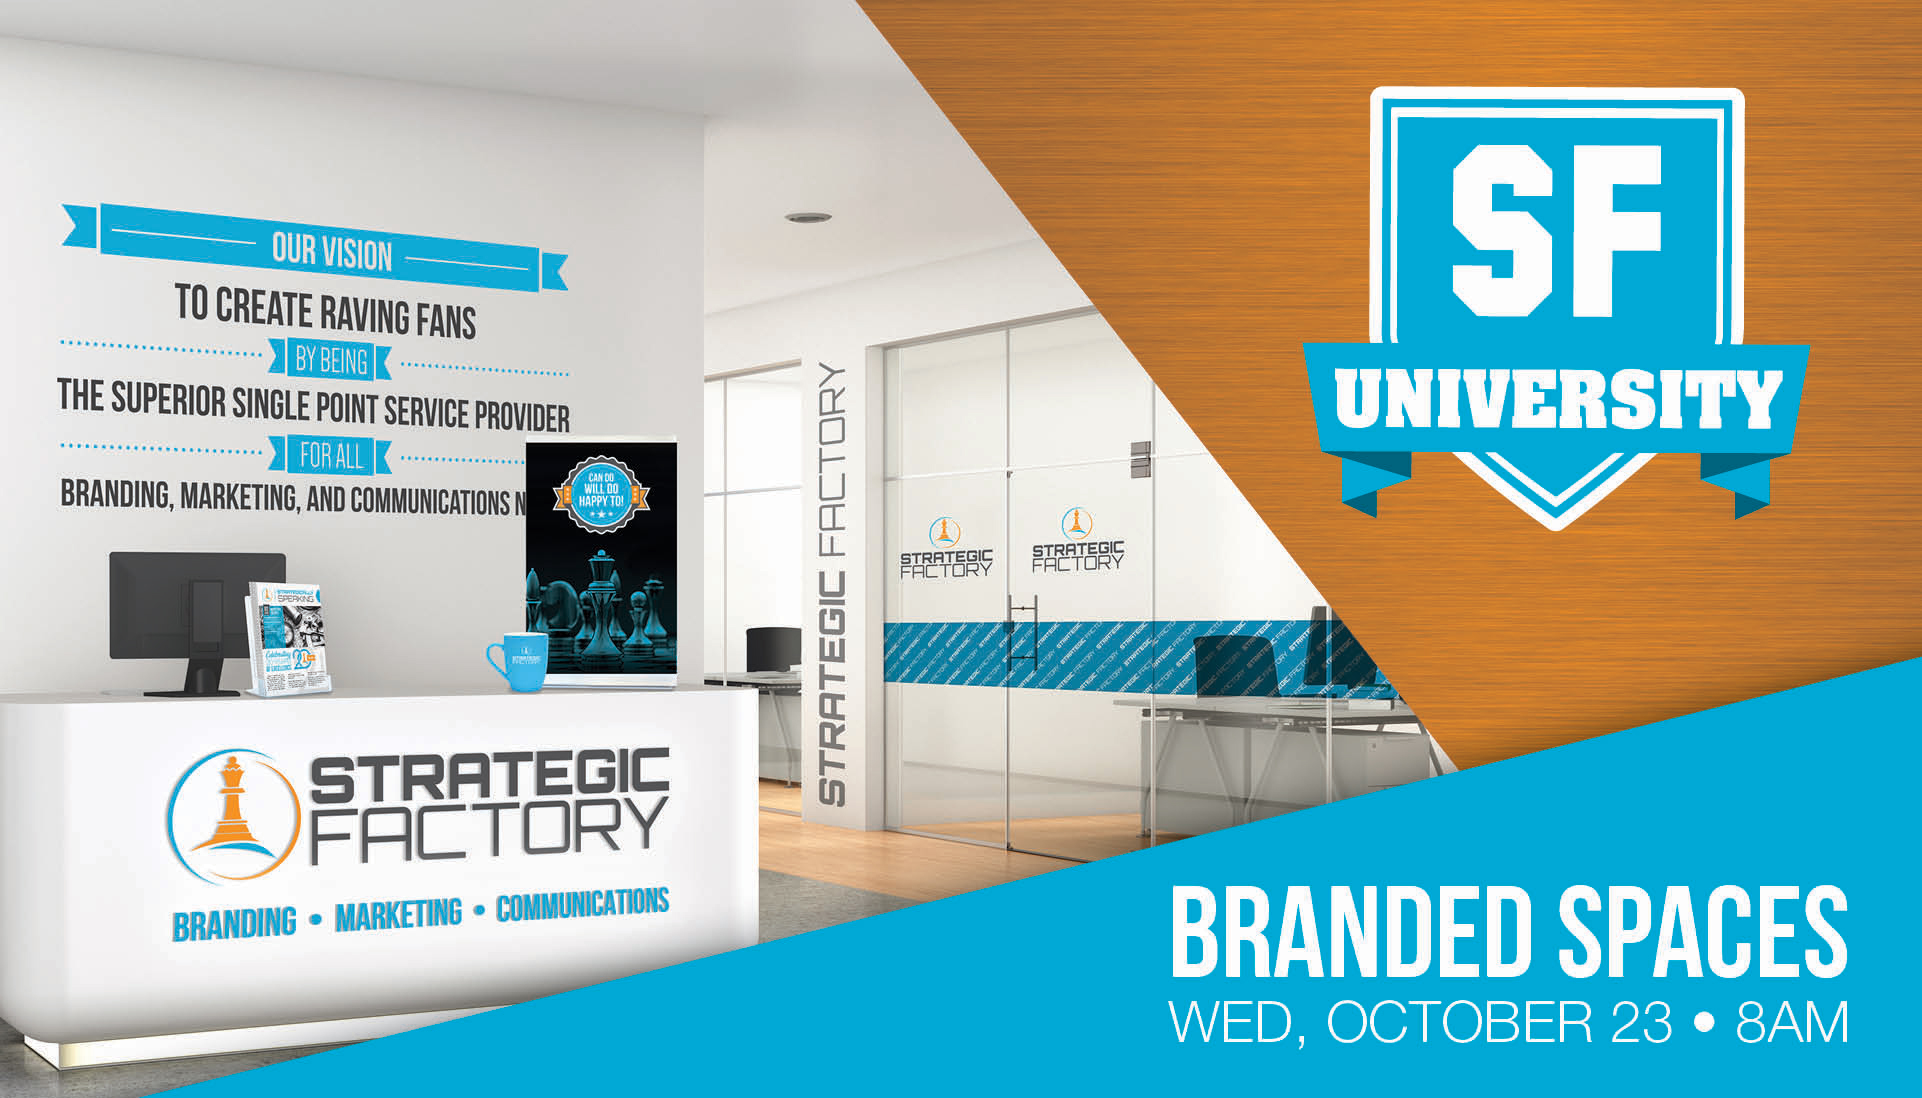 If you're interested in learning more about branded spaces,  come to our free seminar on October 23.